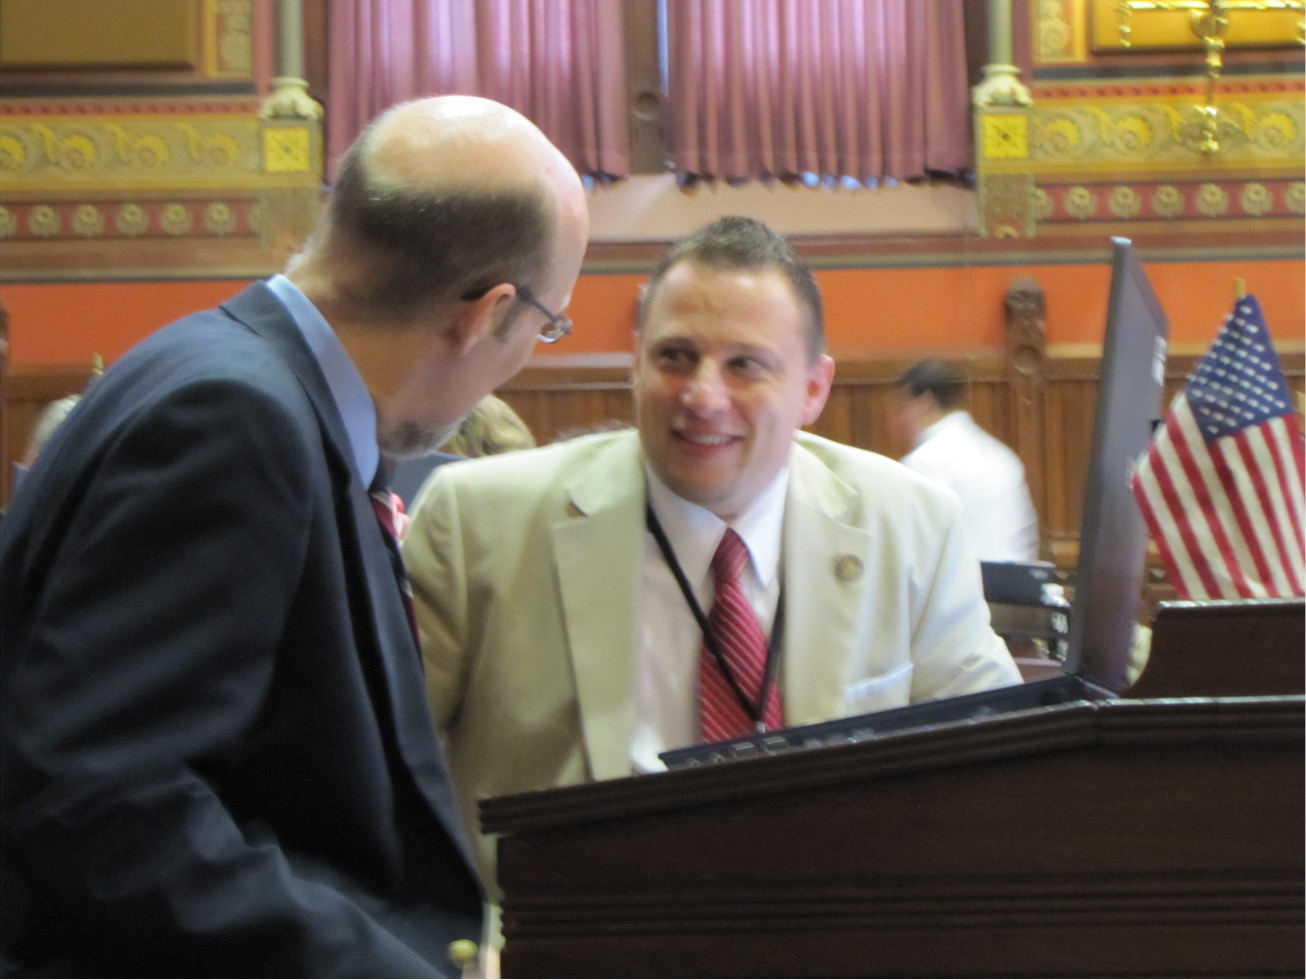 FILE PHOTO: Rep. Rob Sampson, R-Wolcott, right, consults with Sen. Joe Markley, R-Southington, during a House debate, | Arielle Levin Becker / The Connecticut Mirror